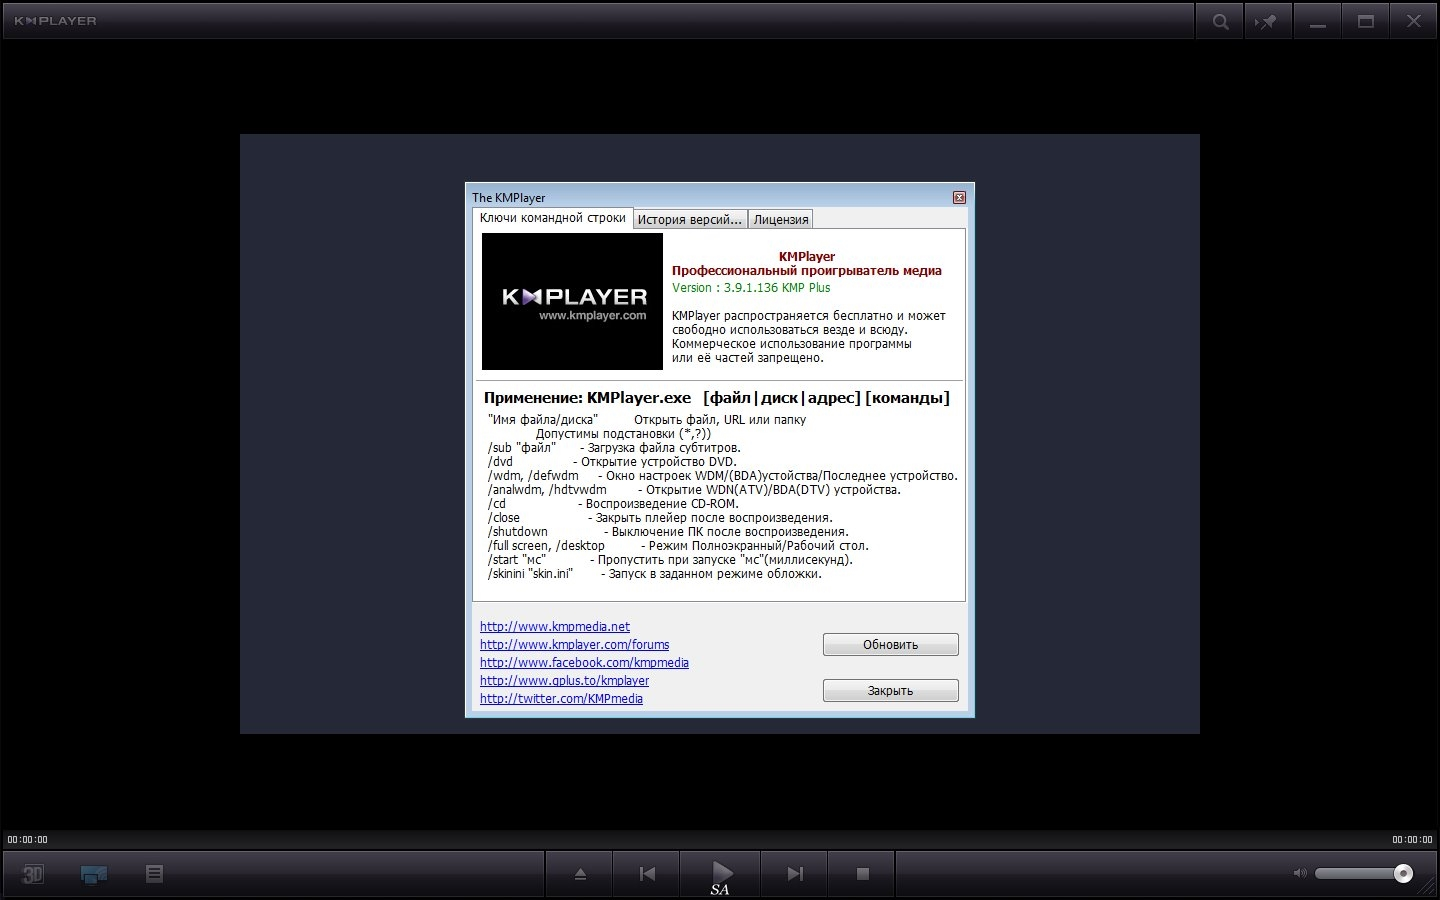 The KMPlayer 3.9.1.136 [Shareware]